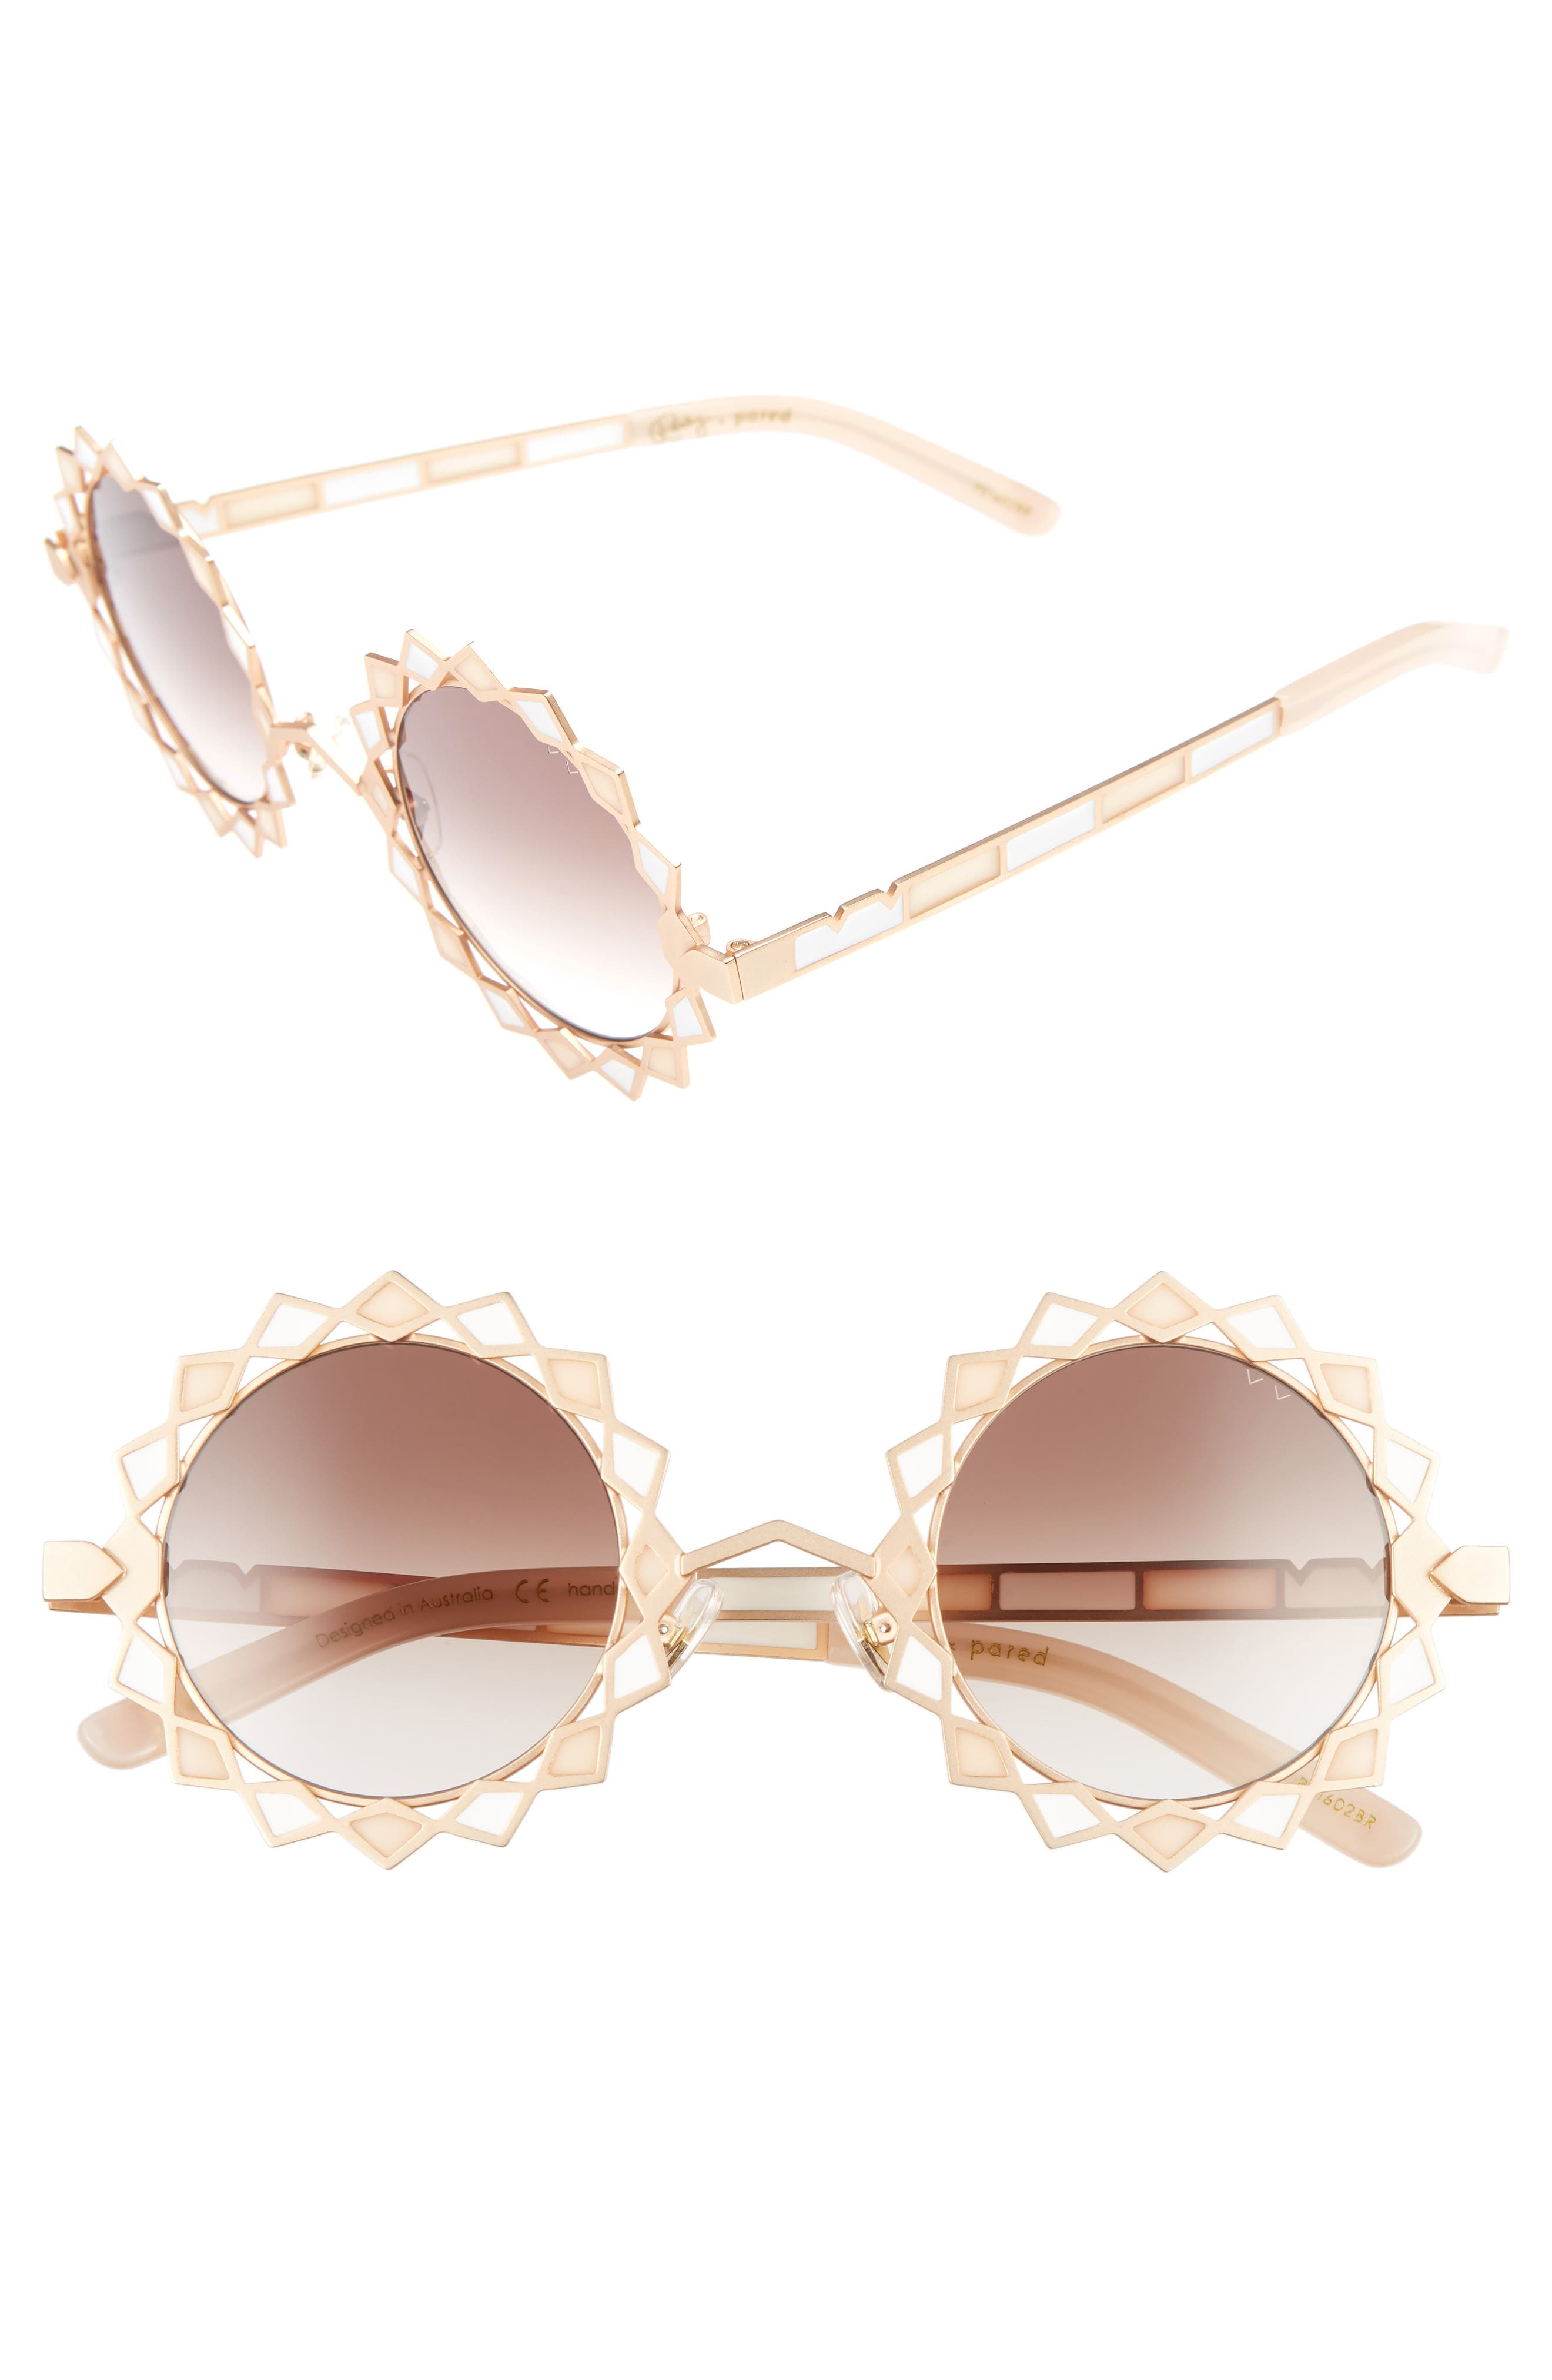 Moon & Stars 44mm Round Retro Sunglasses,                             Main thumbnail 1, color,                             Rose Gold/ Blush Brown